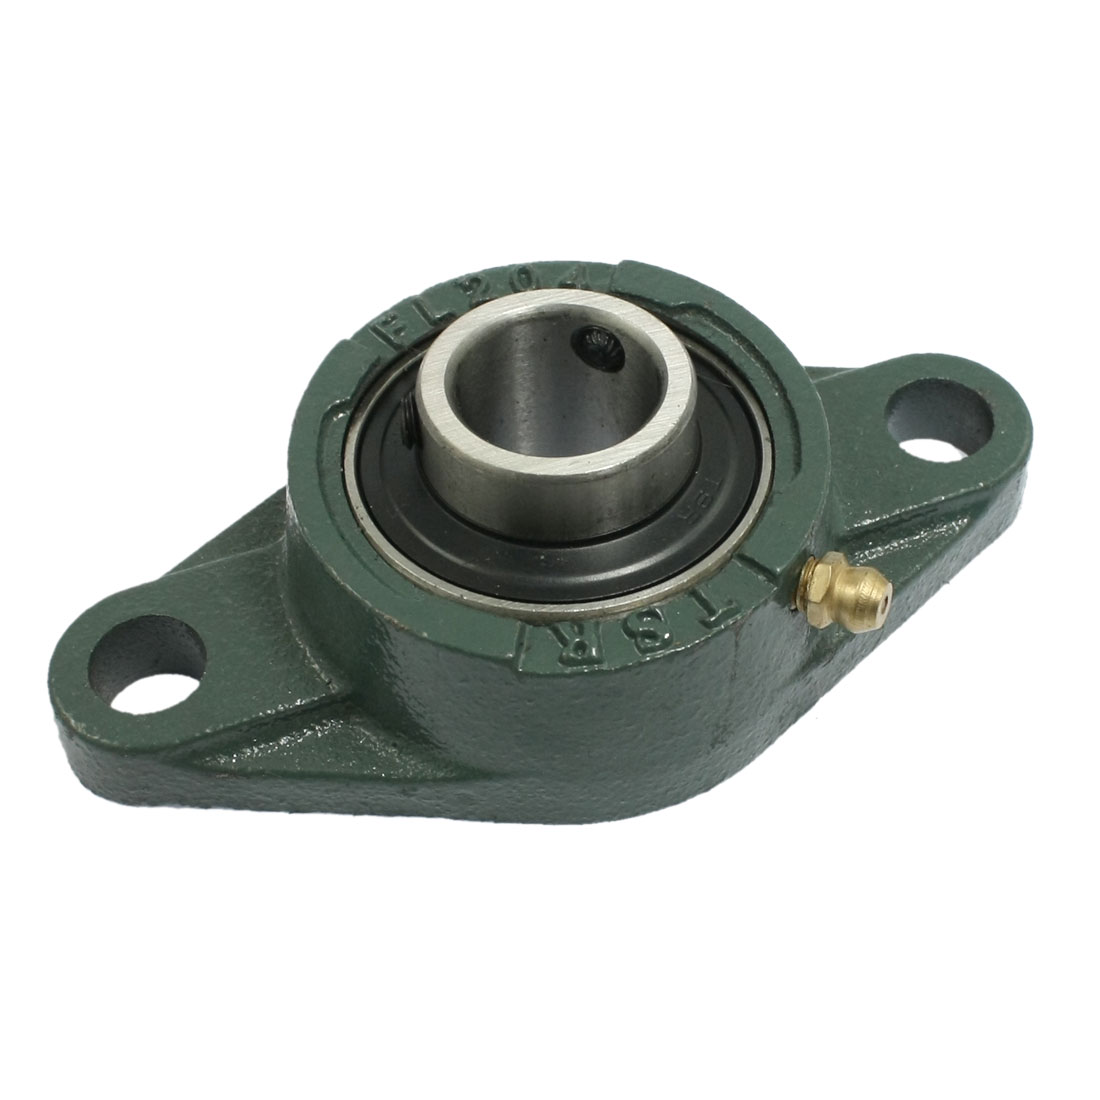 FL204 20mm Bore Self-aligning Flange Bearing UC204